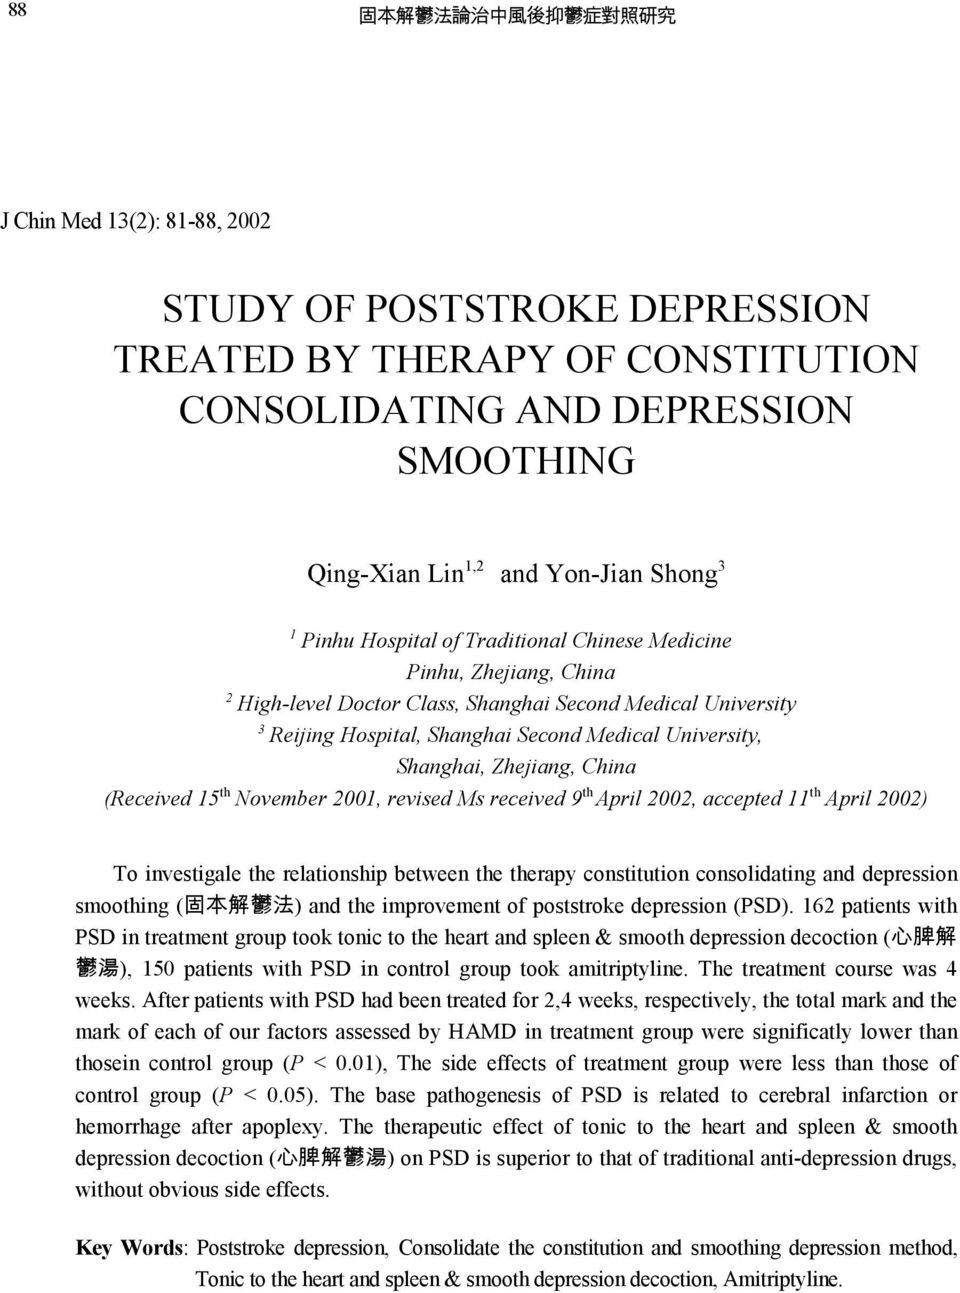 University, Shanghai, Zhejiang, China (Received 15 th November 2001, revised Ms received 9 th April 2002, accepted 11 th April 2002) To investigale the relationship between the therapy constitution